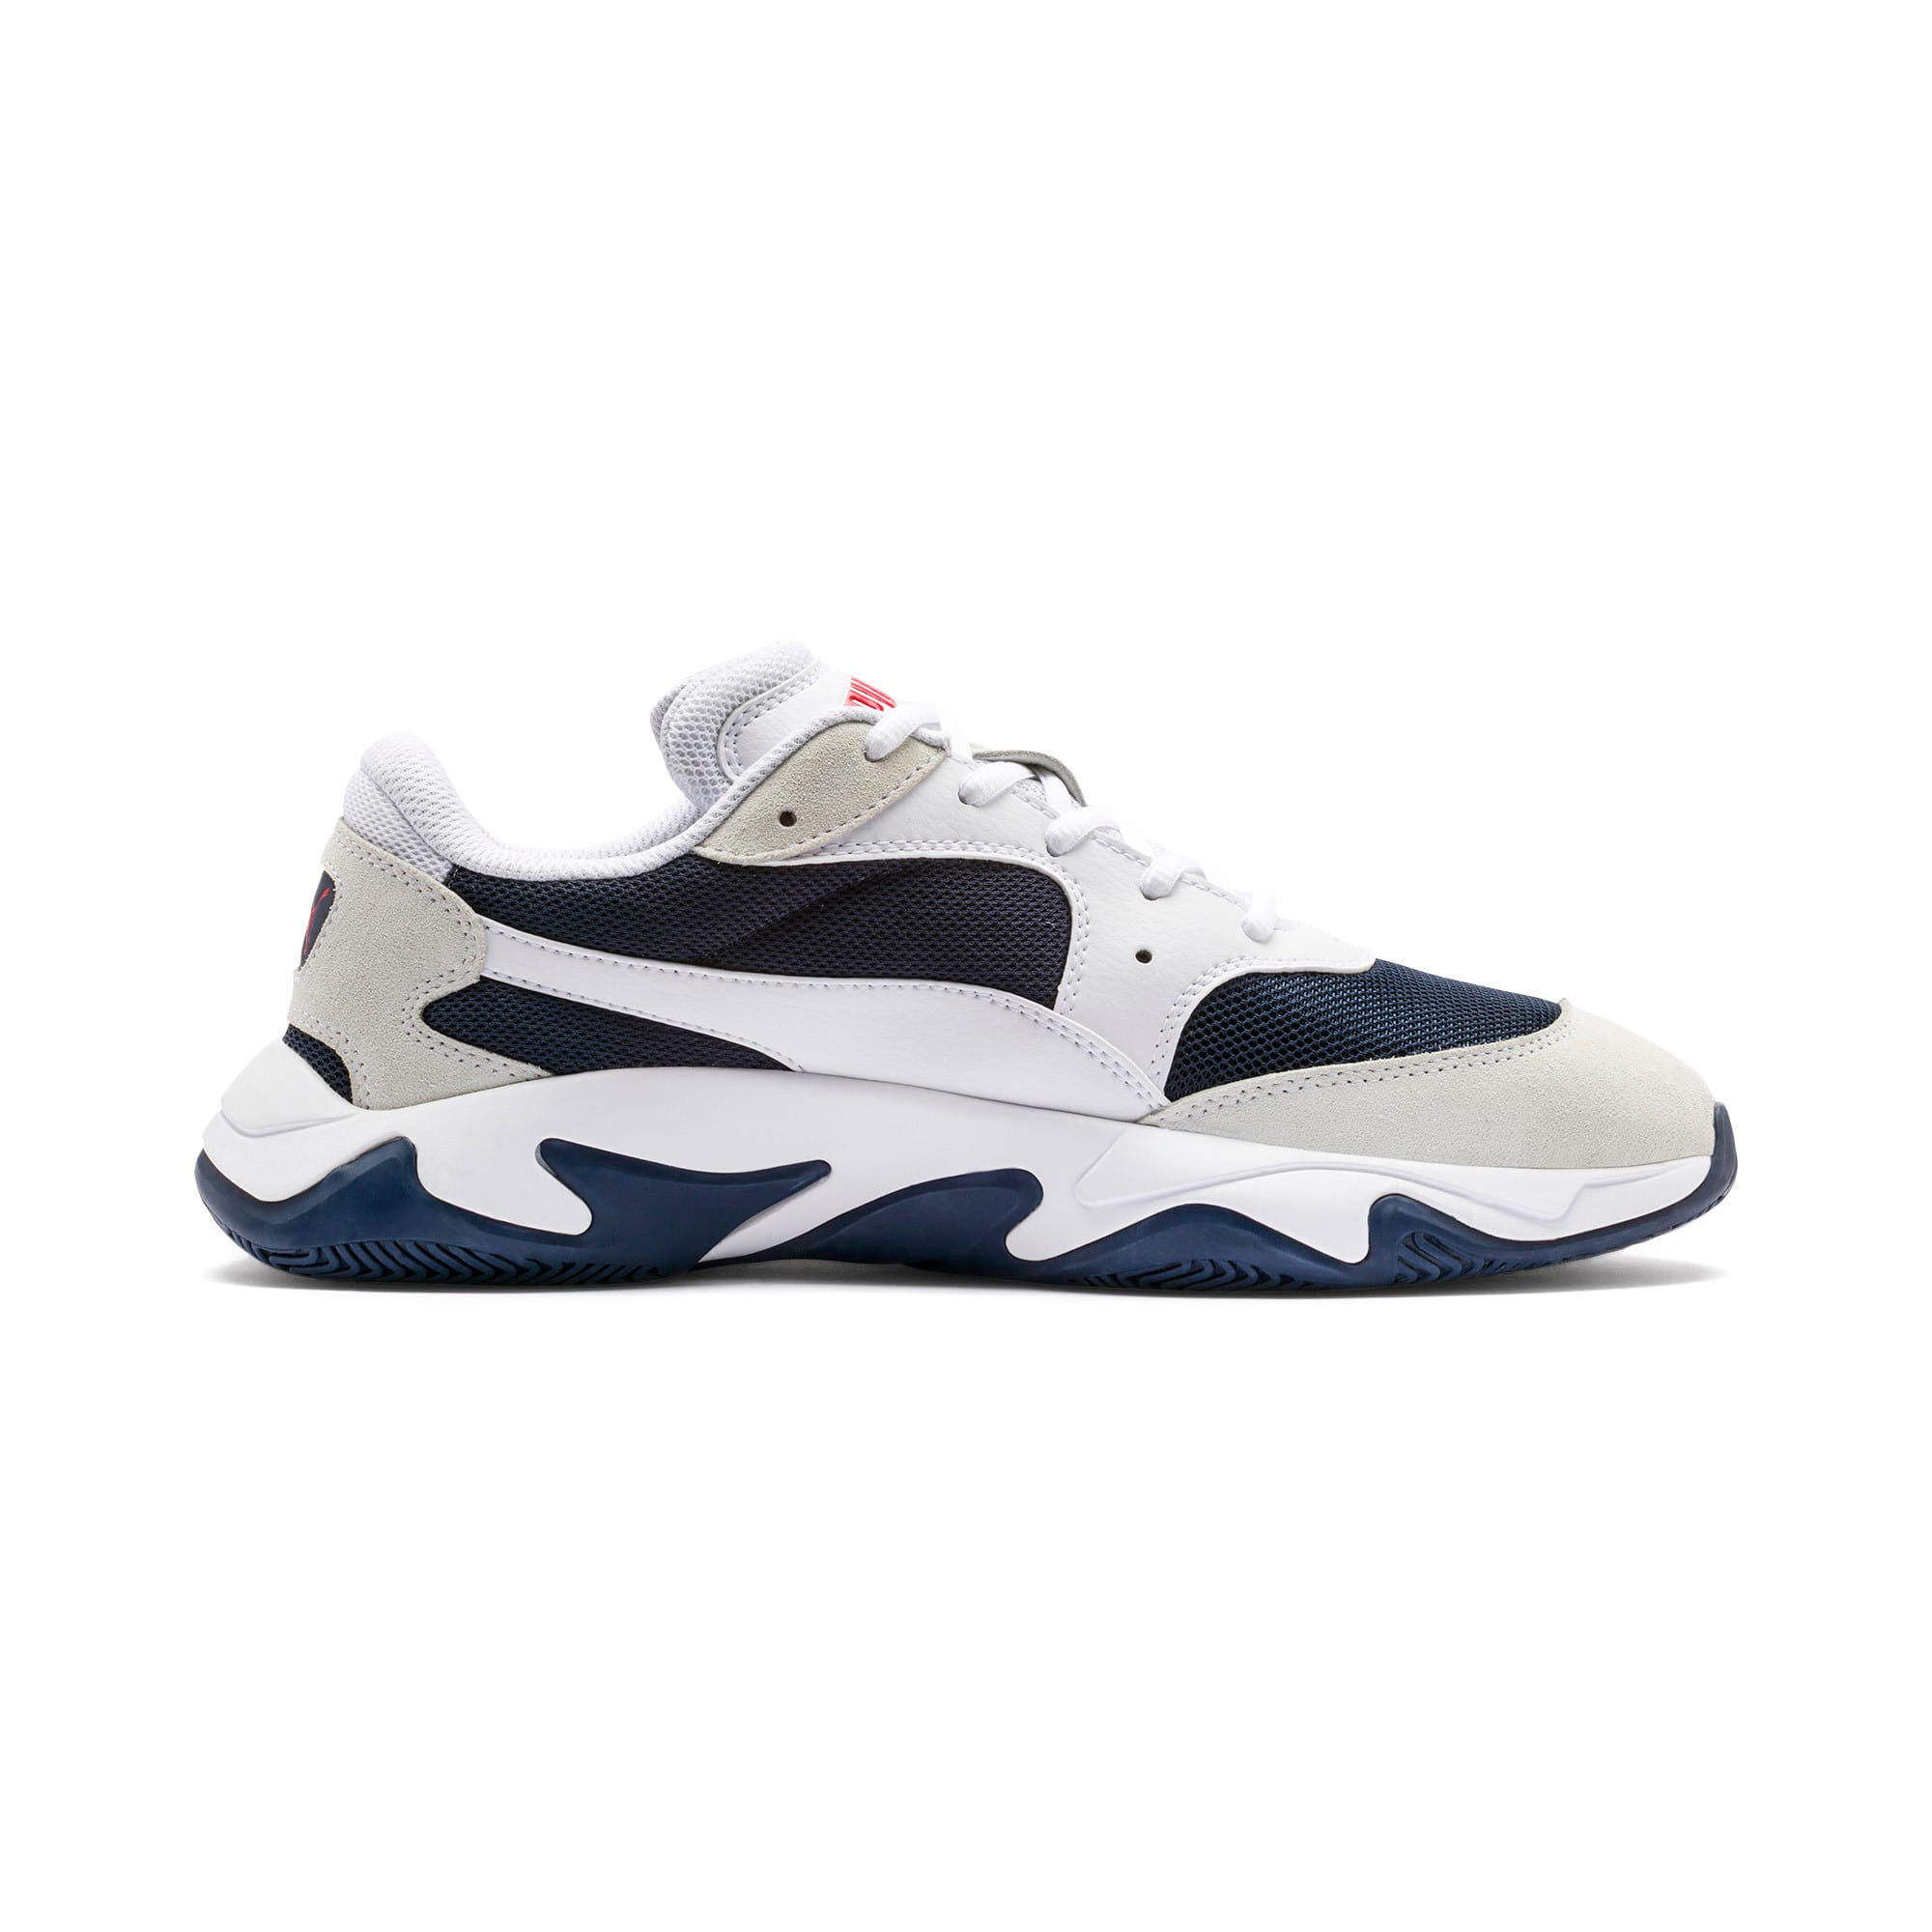 Thumbnail 8 of Storm Adrenaline Trainers, Puma White-Peacoat, medium